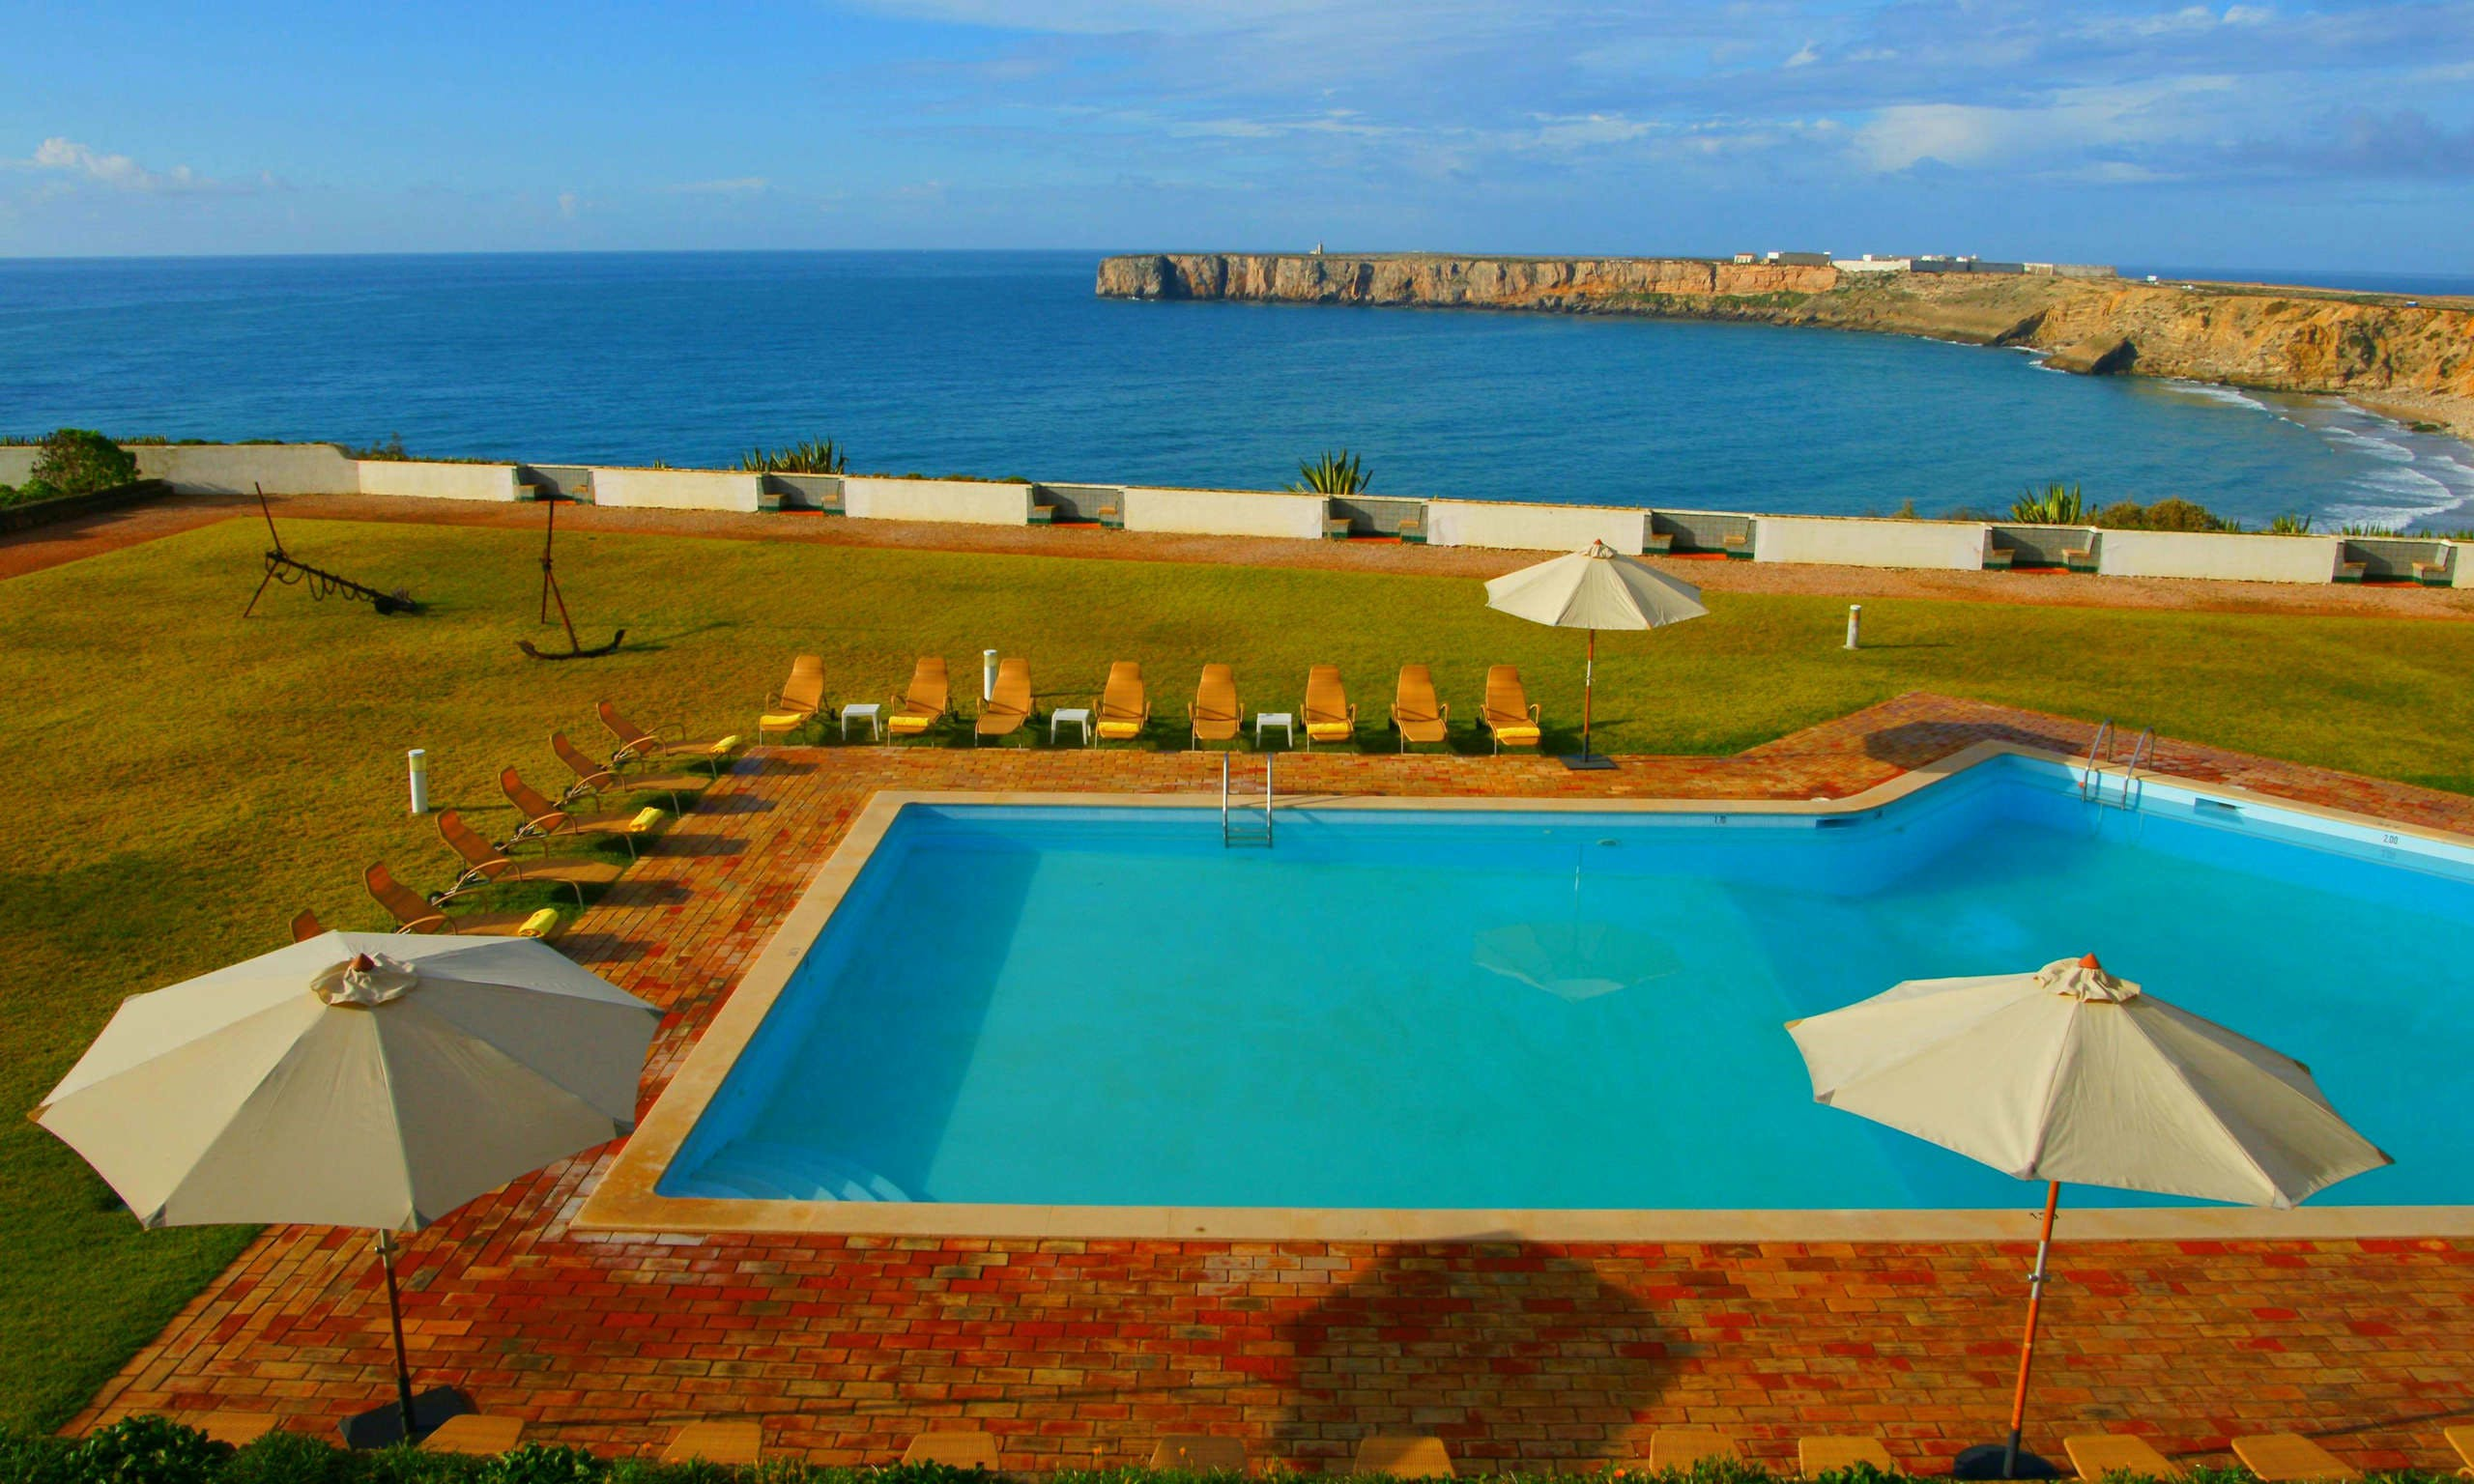 Tivoli Lagos Algarve Last Minute Hotel Deals In Sagres Algarve Hoteltonight